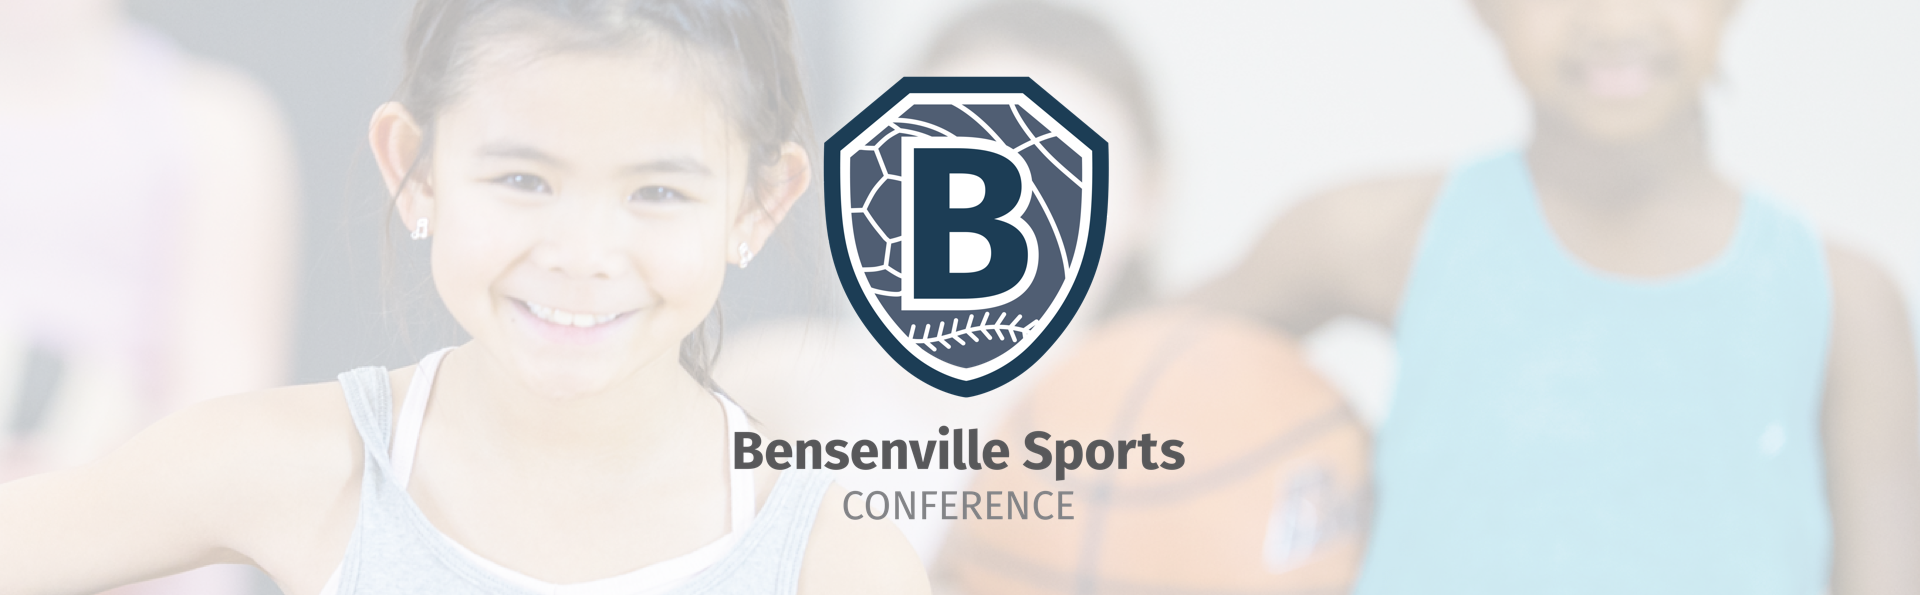 Bensenville Sports Conference.